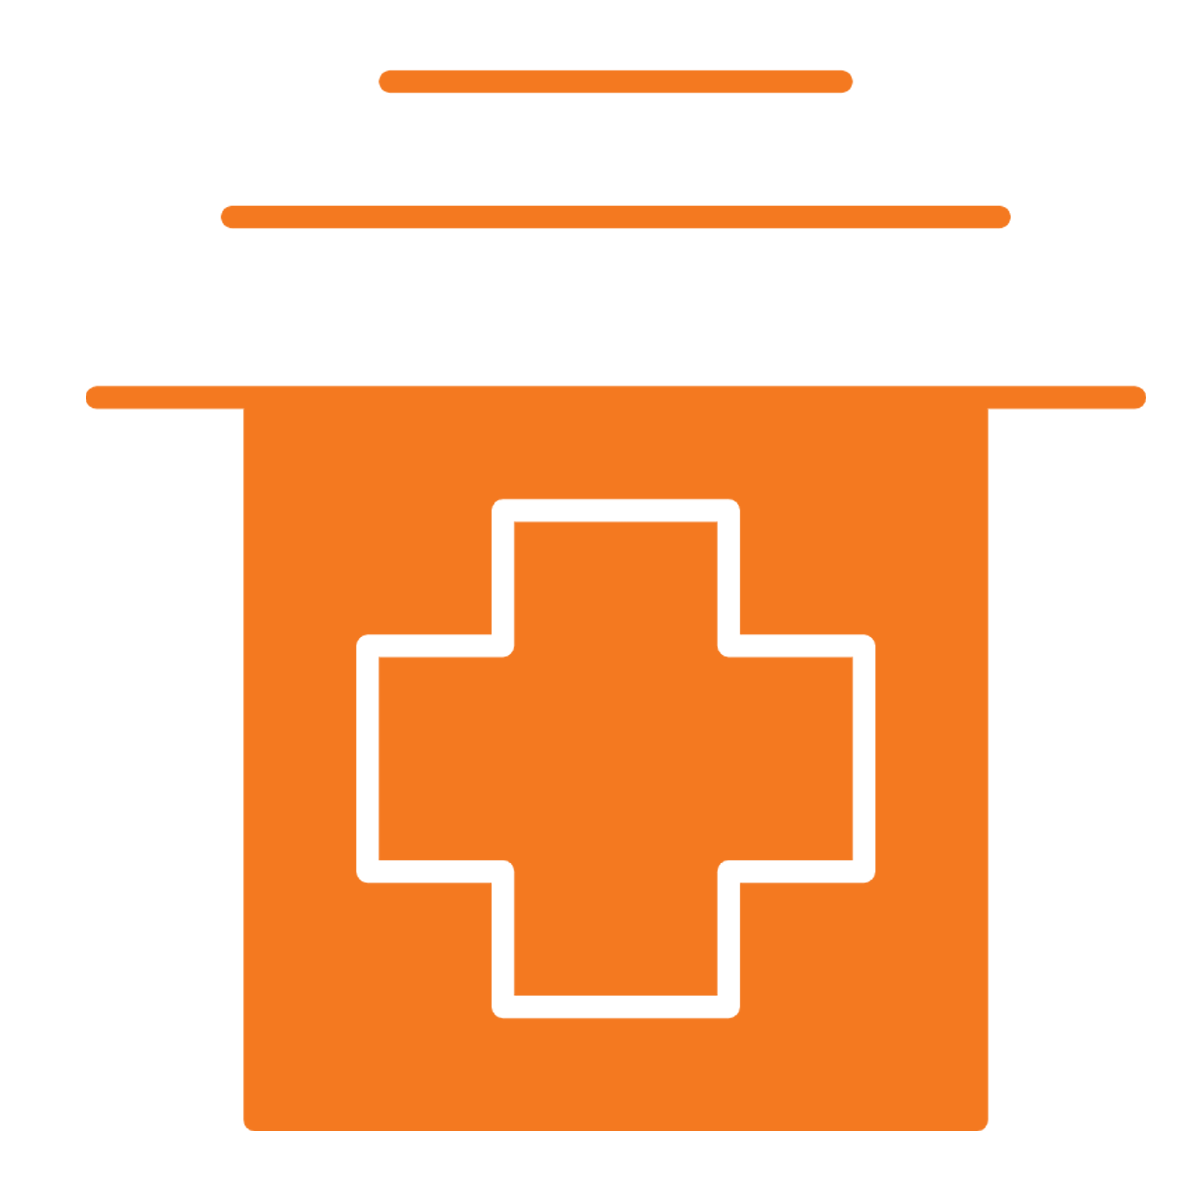 ScanSourceGoRemote_WorkplacesoftheFuture_Healthcare_Orange_Icon